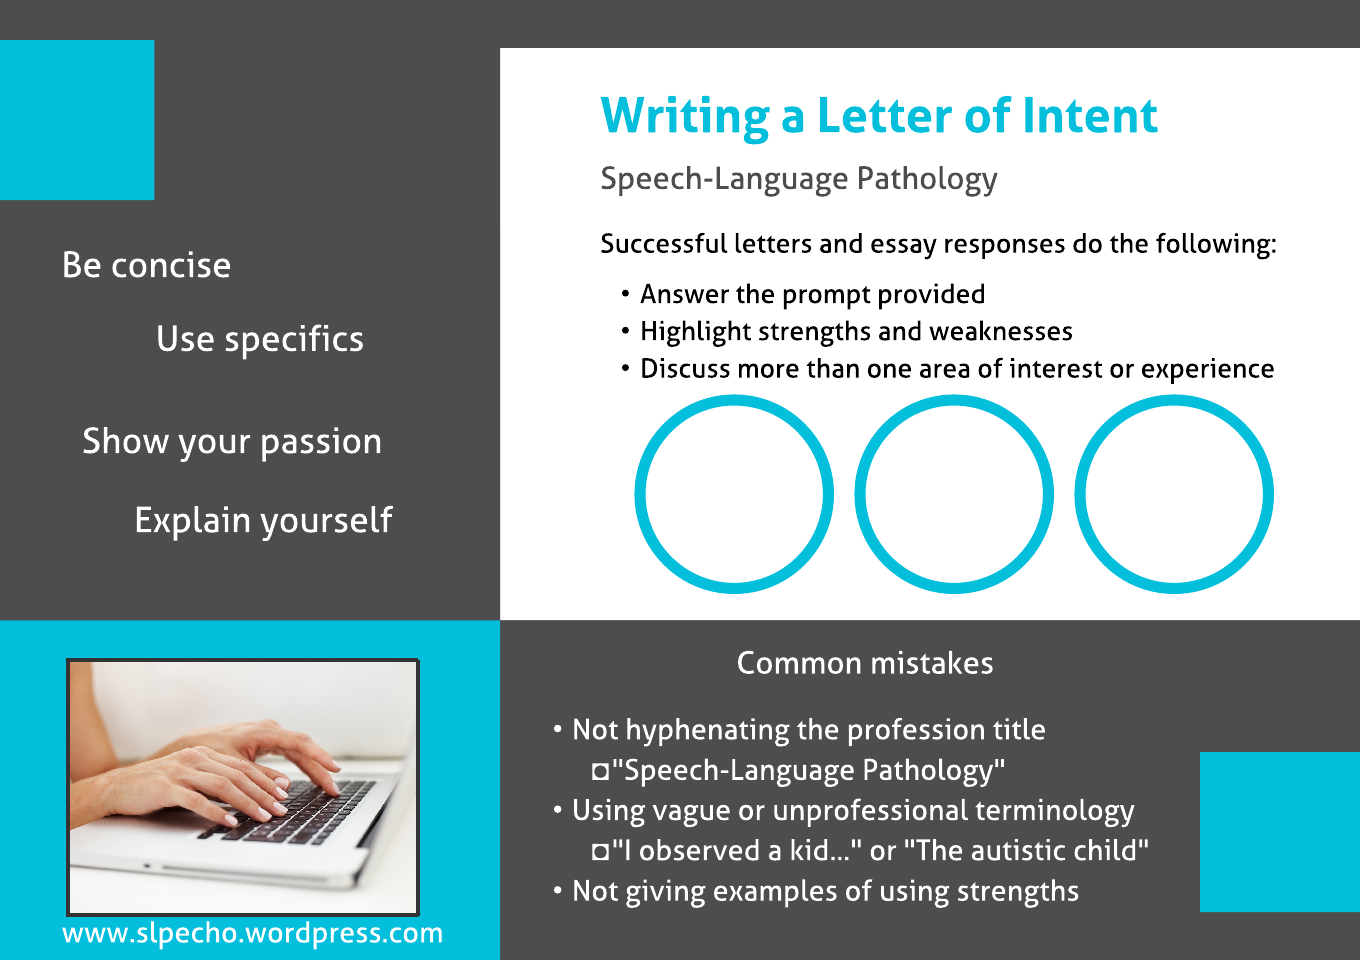 suggestions for writing a letter of intent slp echo